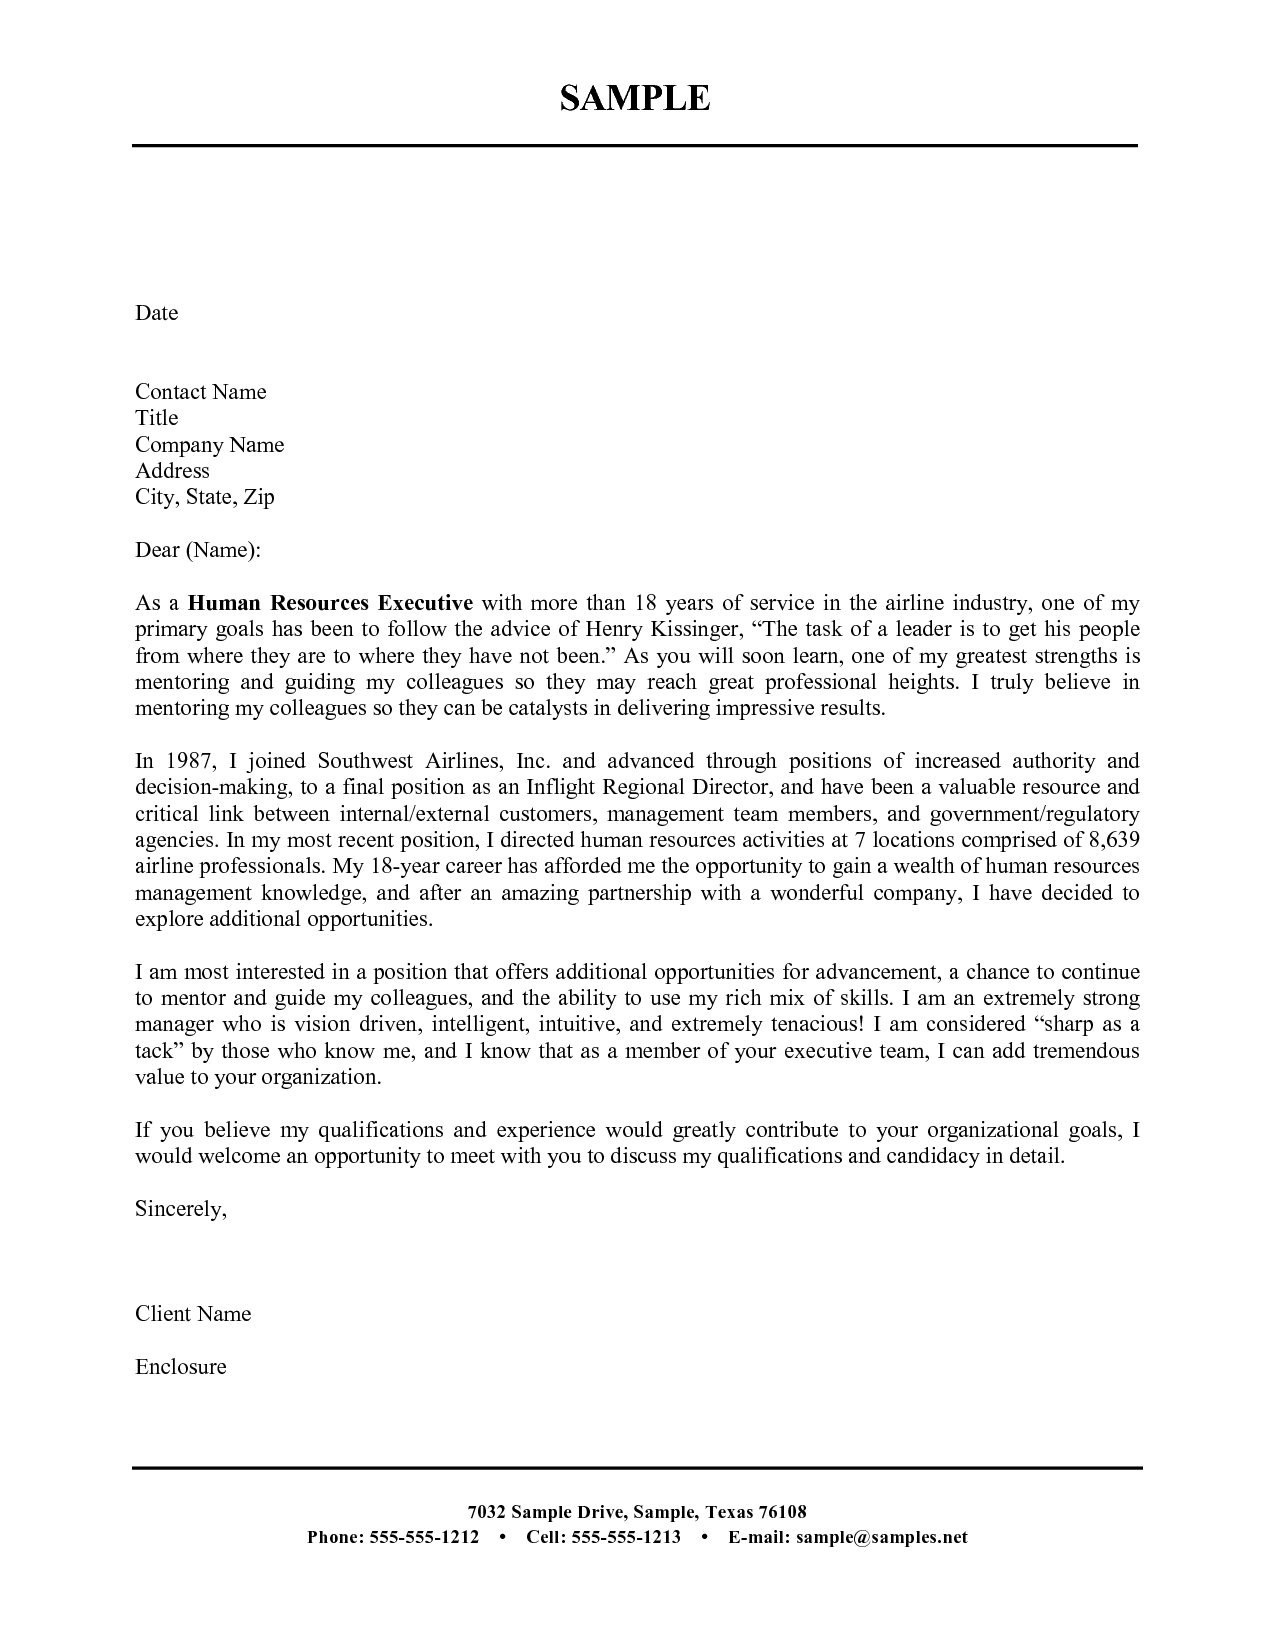 Ms Word Cover Letter Templatecover Letter Template Application - Free Printable Resume Cover Letter Templates